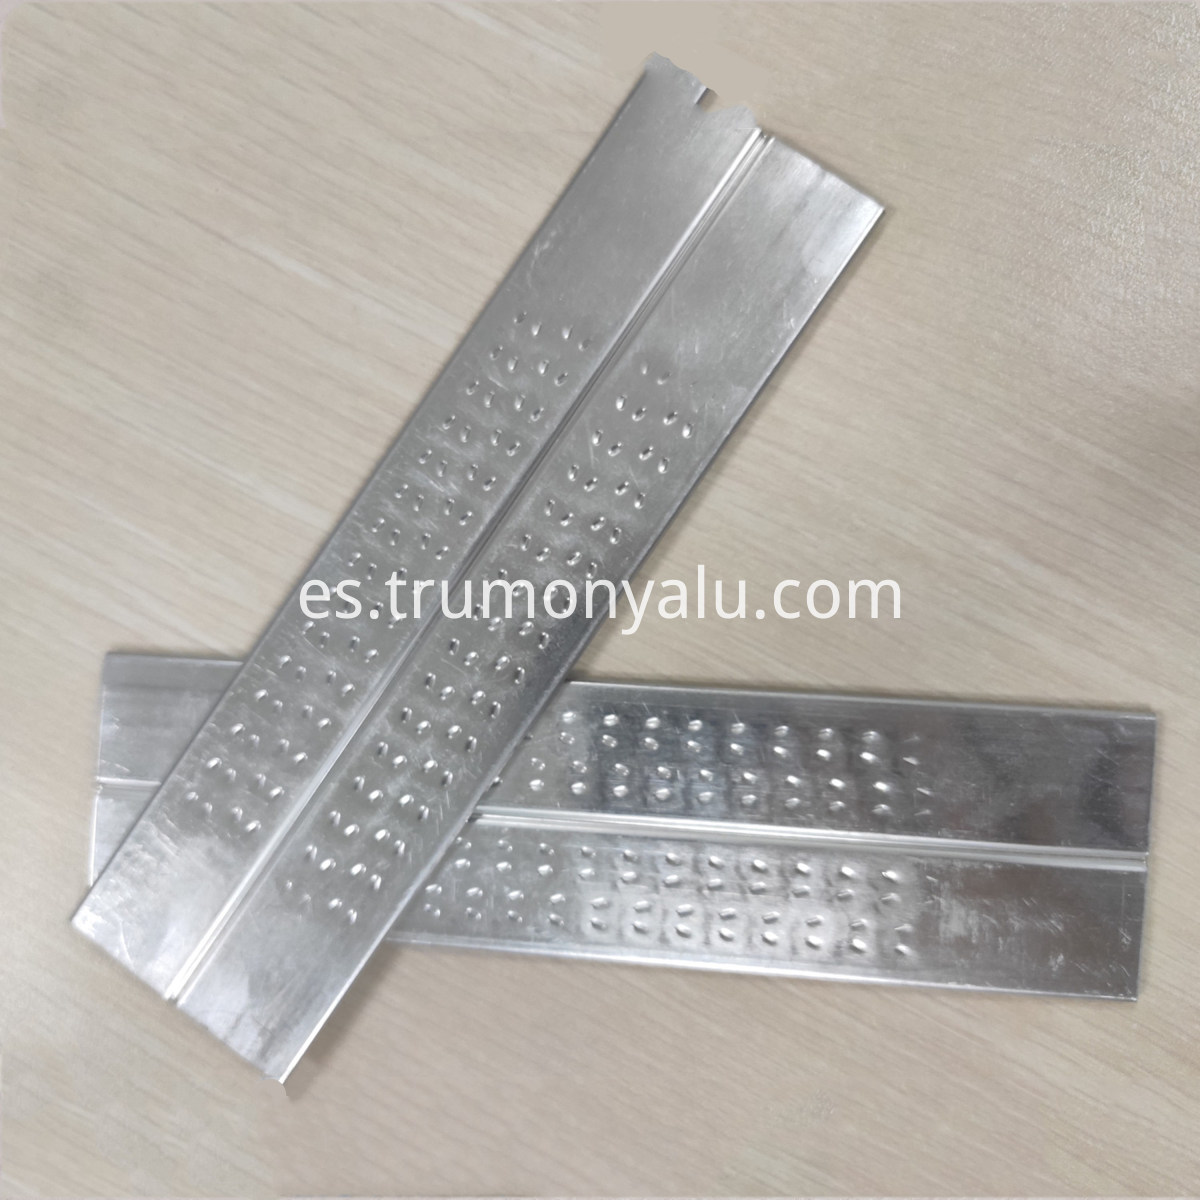 Dimple Aluminium High Frequency Tube (4)